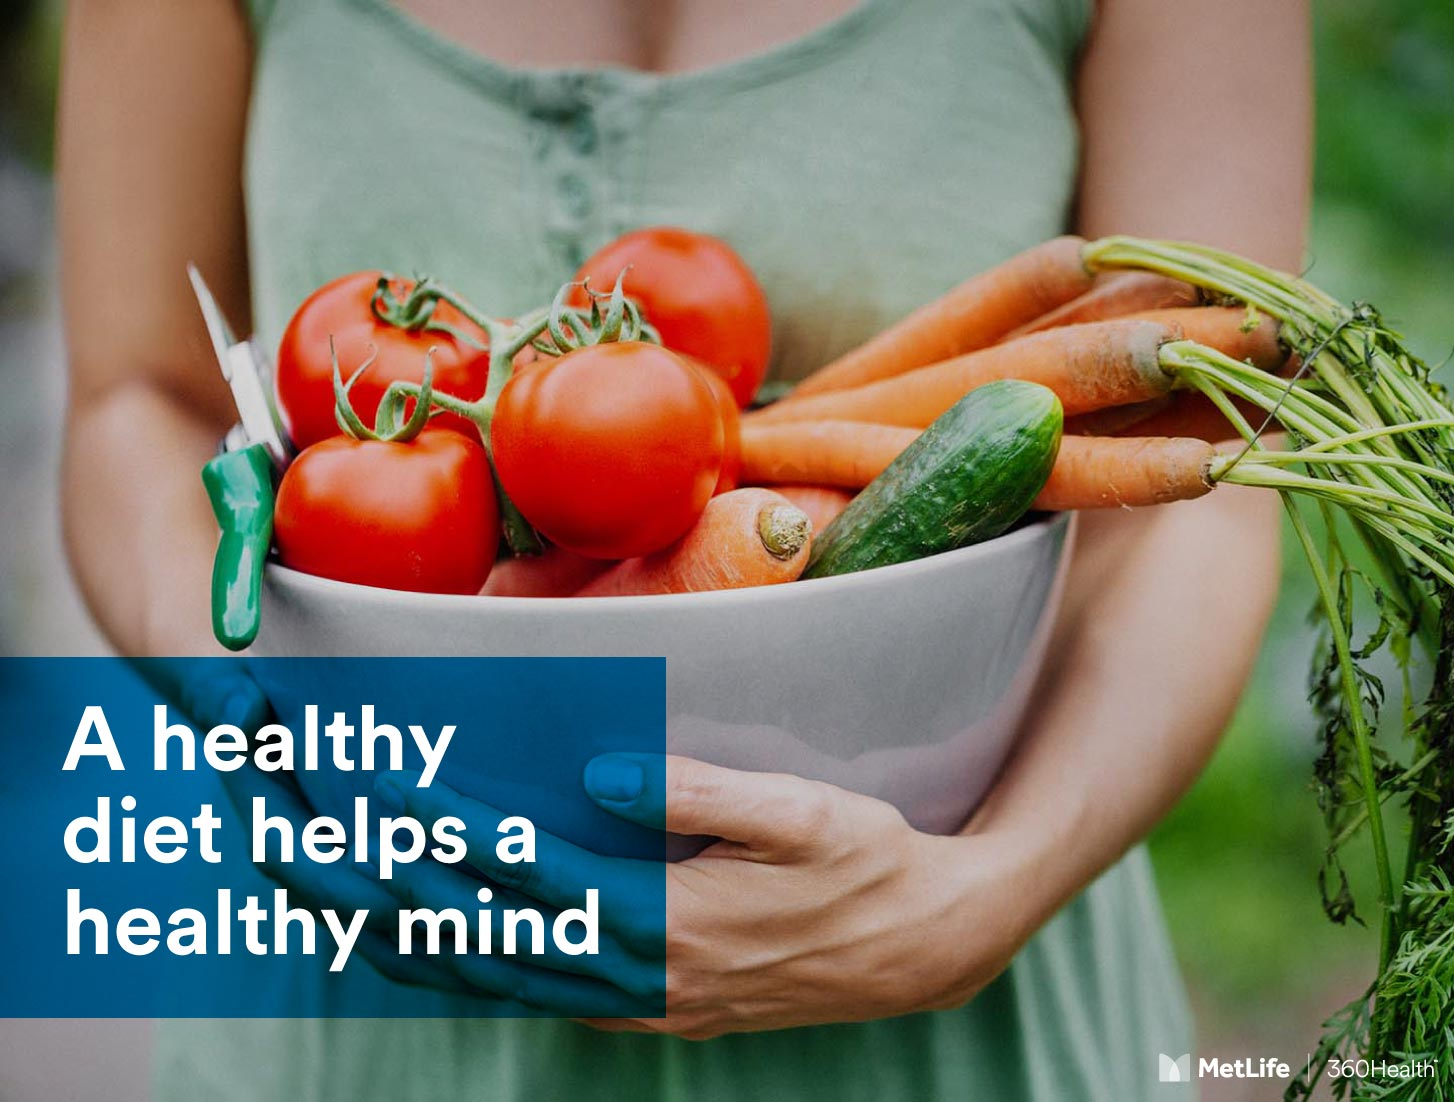 A healthy diet helps a healthy mind